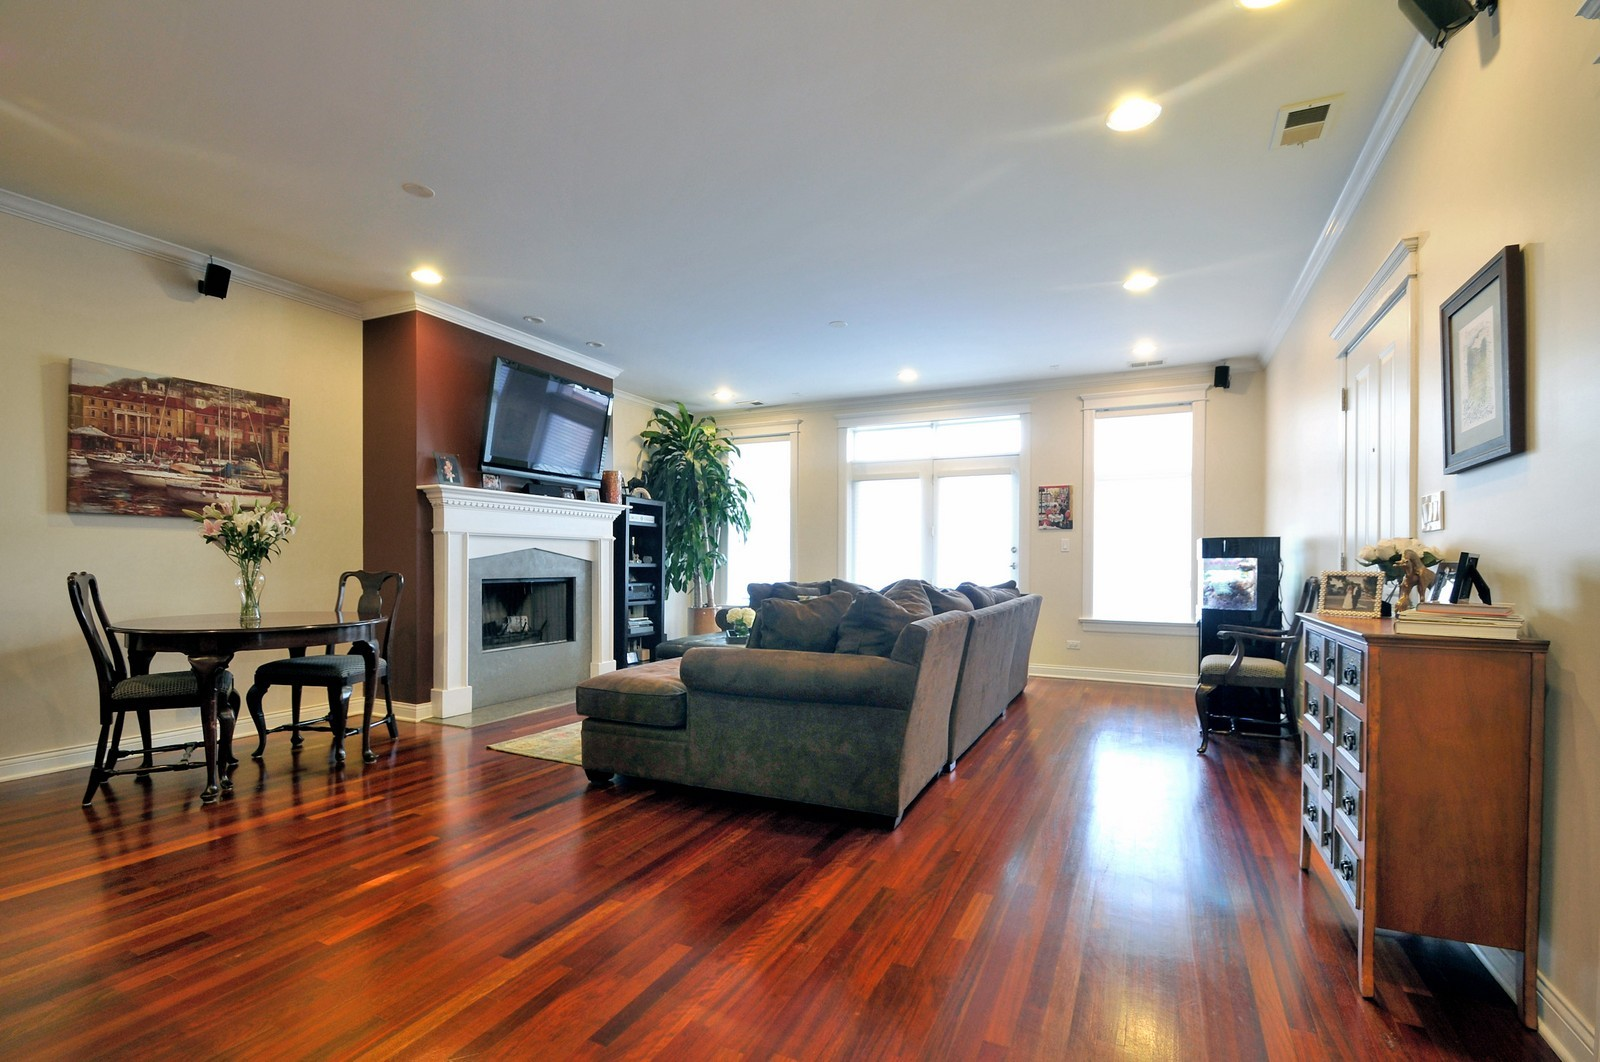 Real Estate Photography - 3056 N Clybourn, Unit 2N, Chicago, IL, 60618 - Living Room / Dining Room